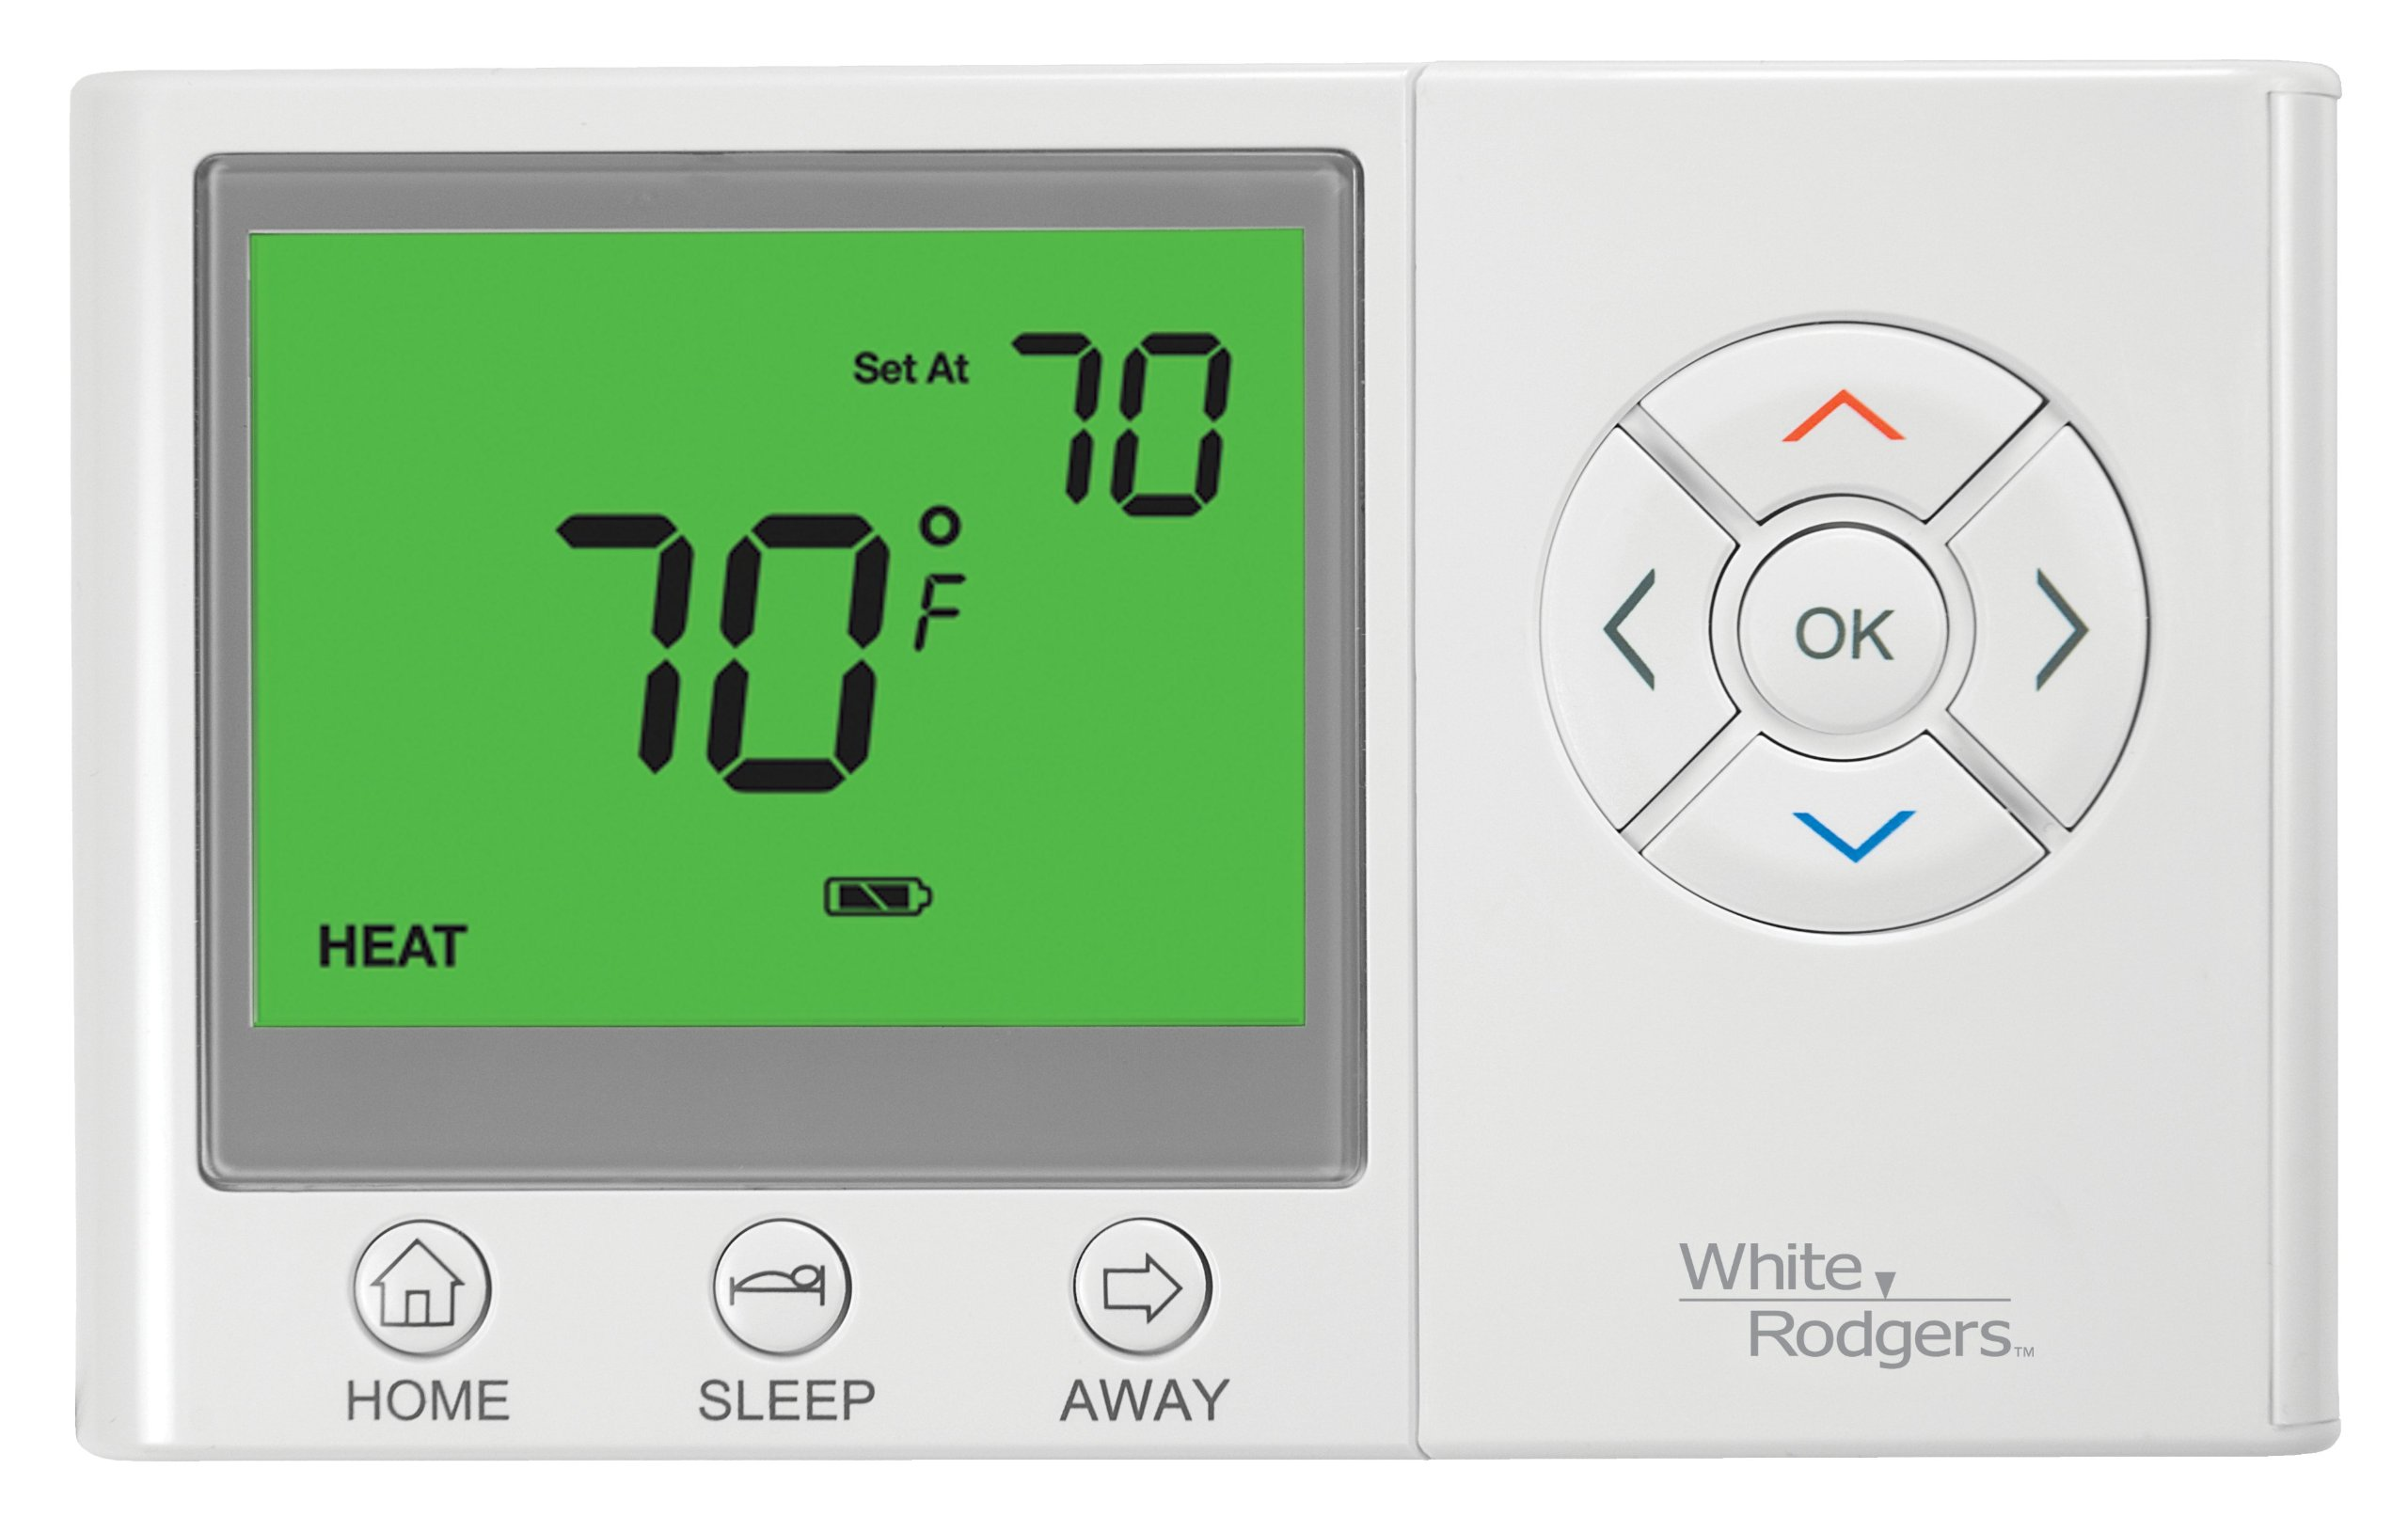 Emerson UNP300 Non-Programmable Thermostat with Home/Sleep/Away Presets  product image